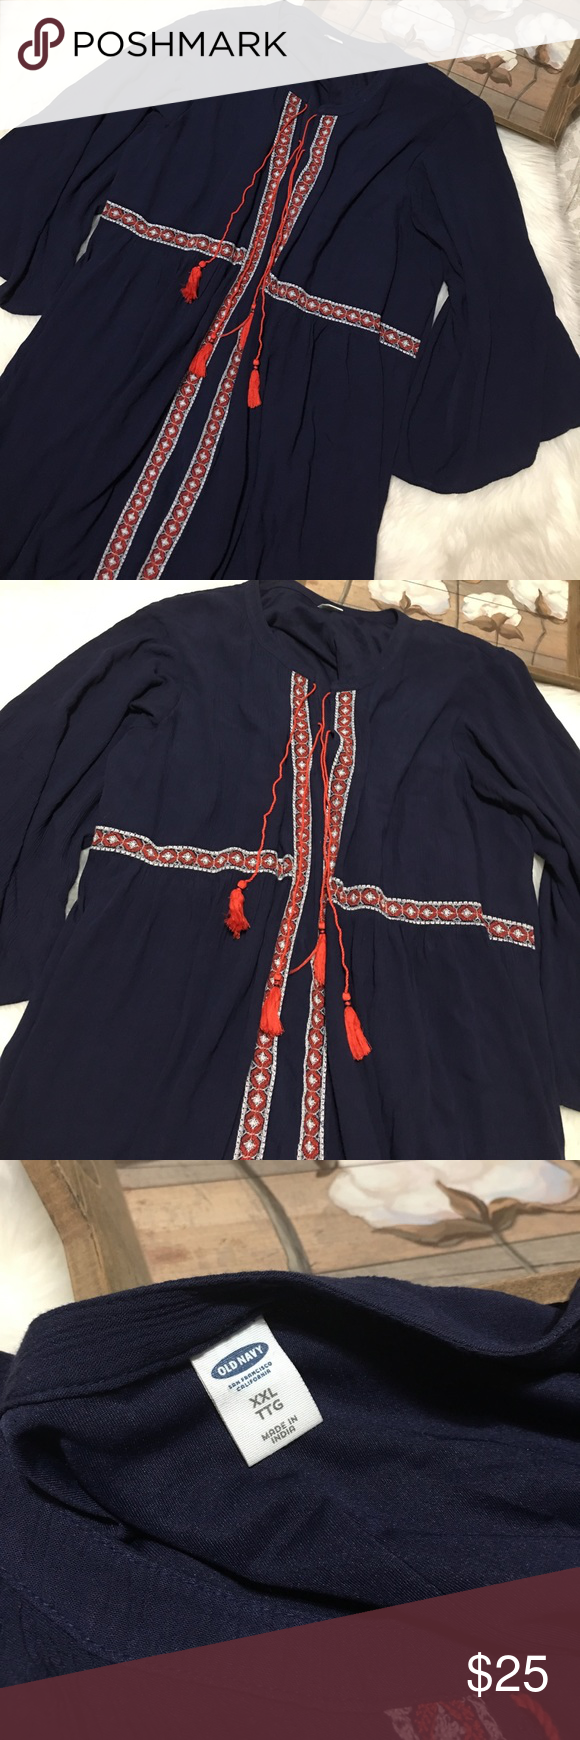 Old Navy • Navy Blue Embroidered Tassel Dress XXL Old navy navy blue and red Embroidered Tassel dress size XXL in great condition. Perfect for all occasions. 3/4 sleeves. Midi Boho dress Old Navy Dresses Midi